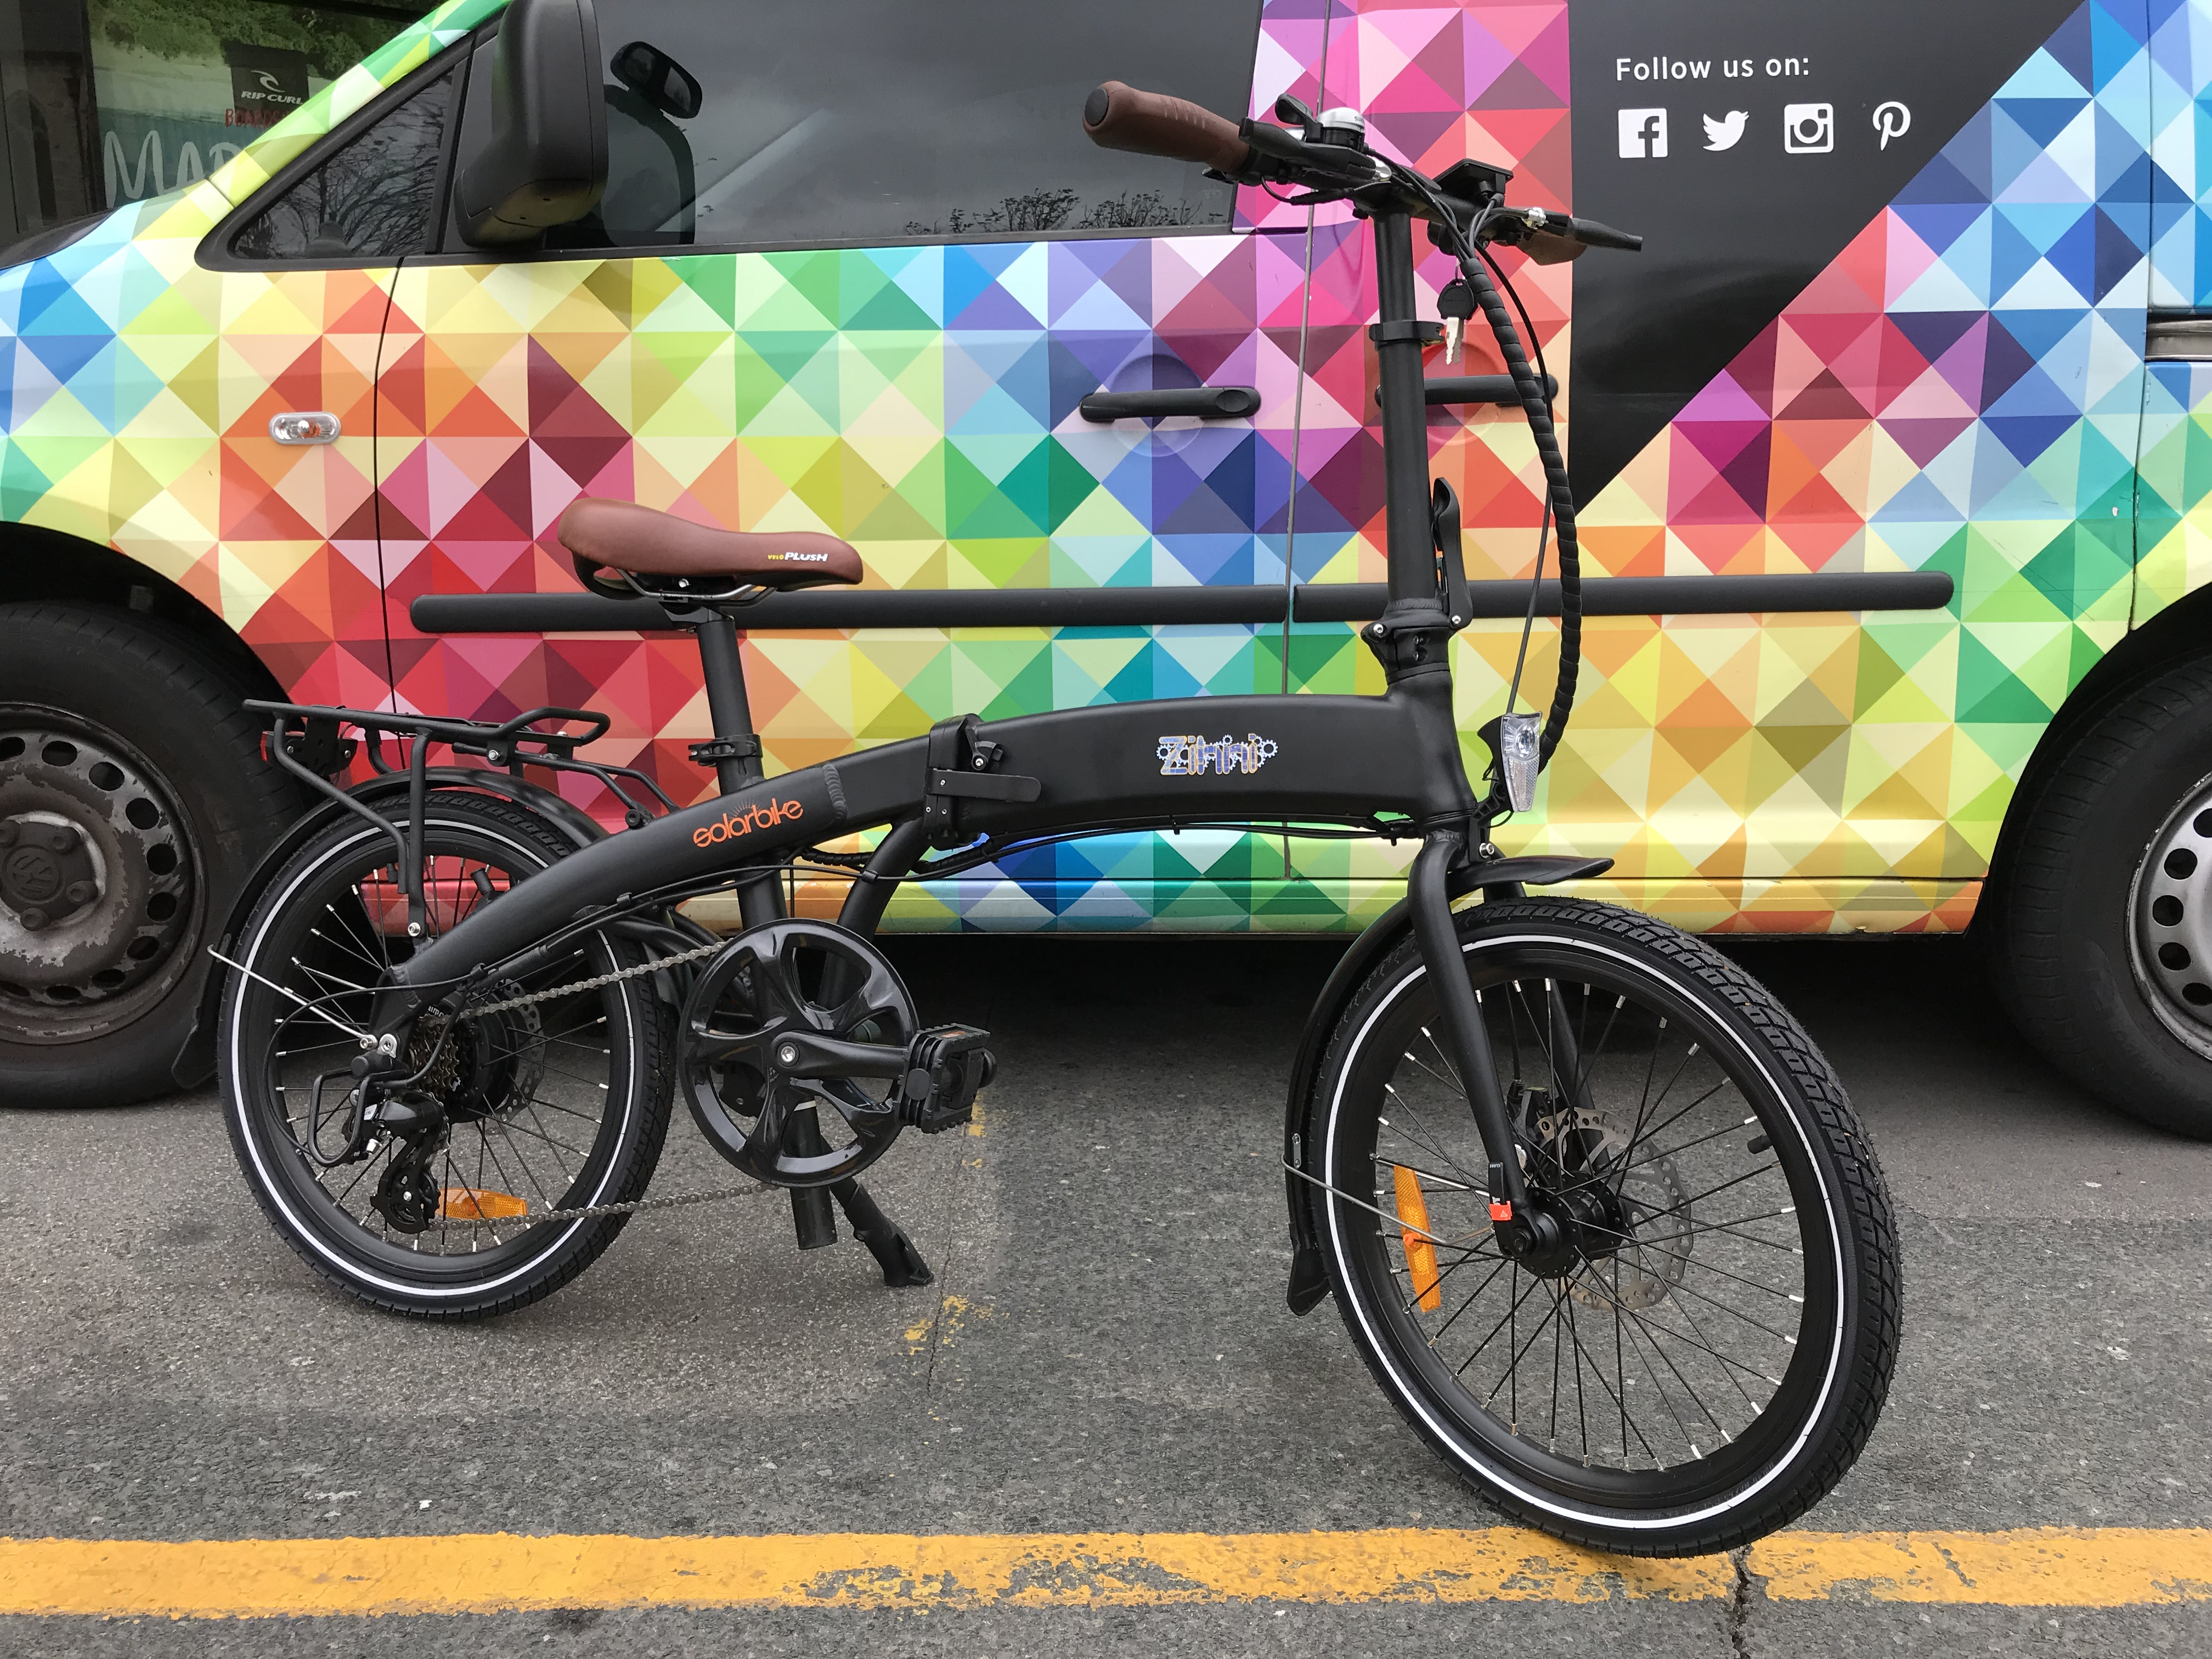 c81a68dc96d It s features include integrated front and rear lights powered by the main  battery and operated from the LCD display on the handlebars